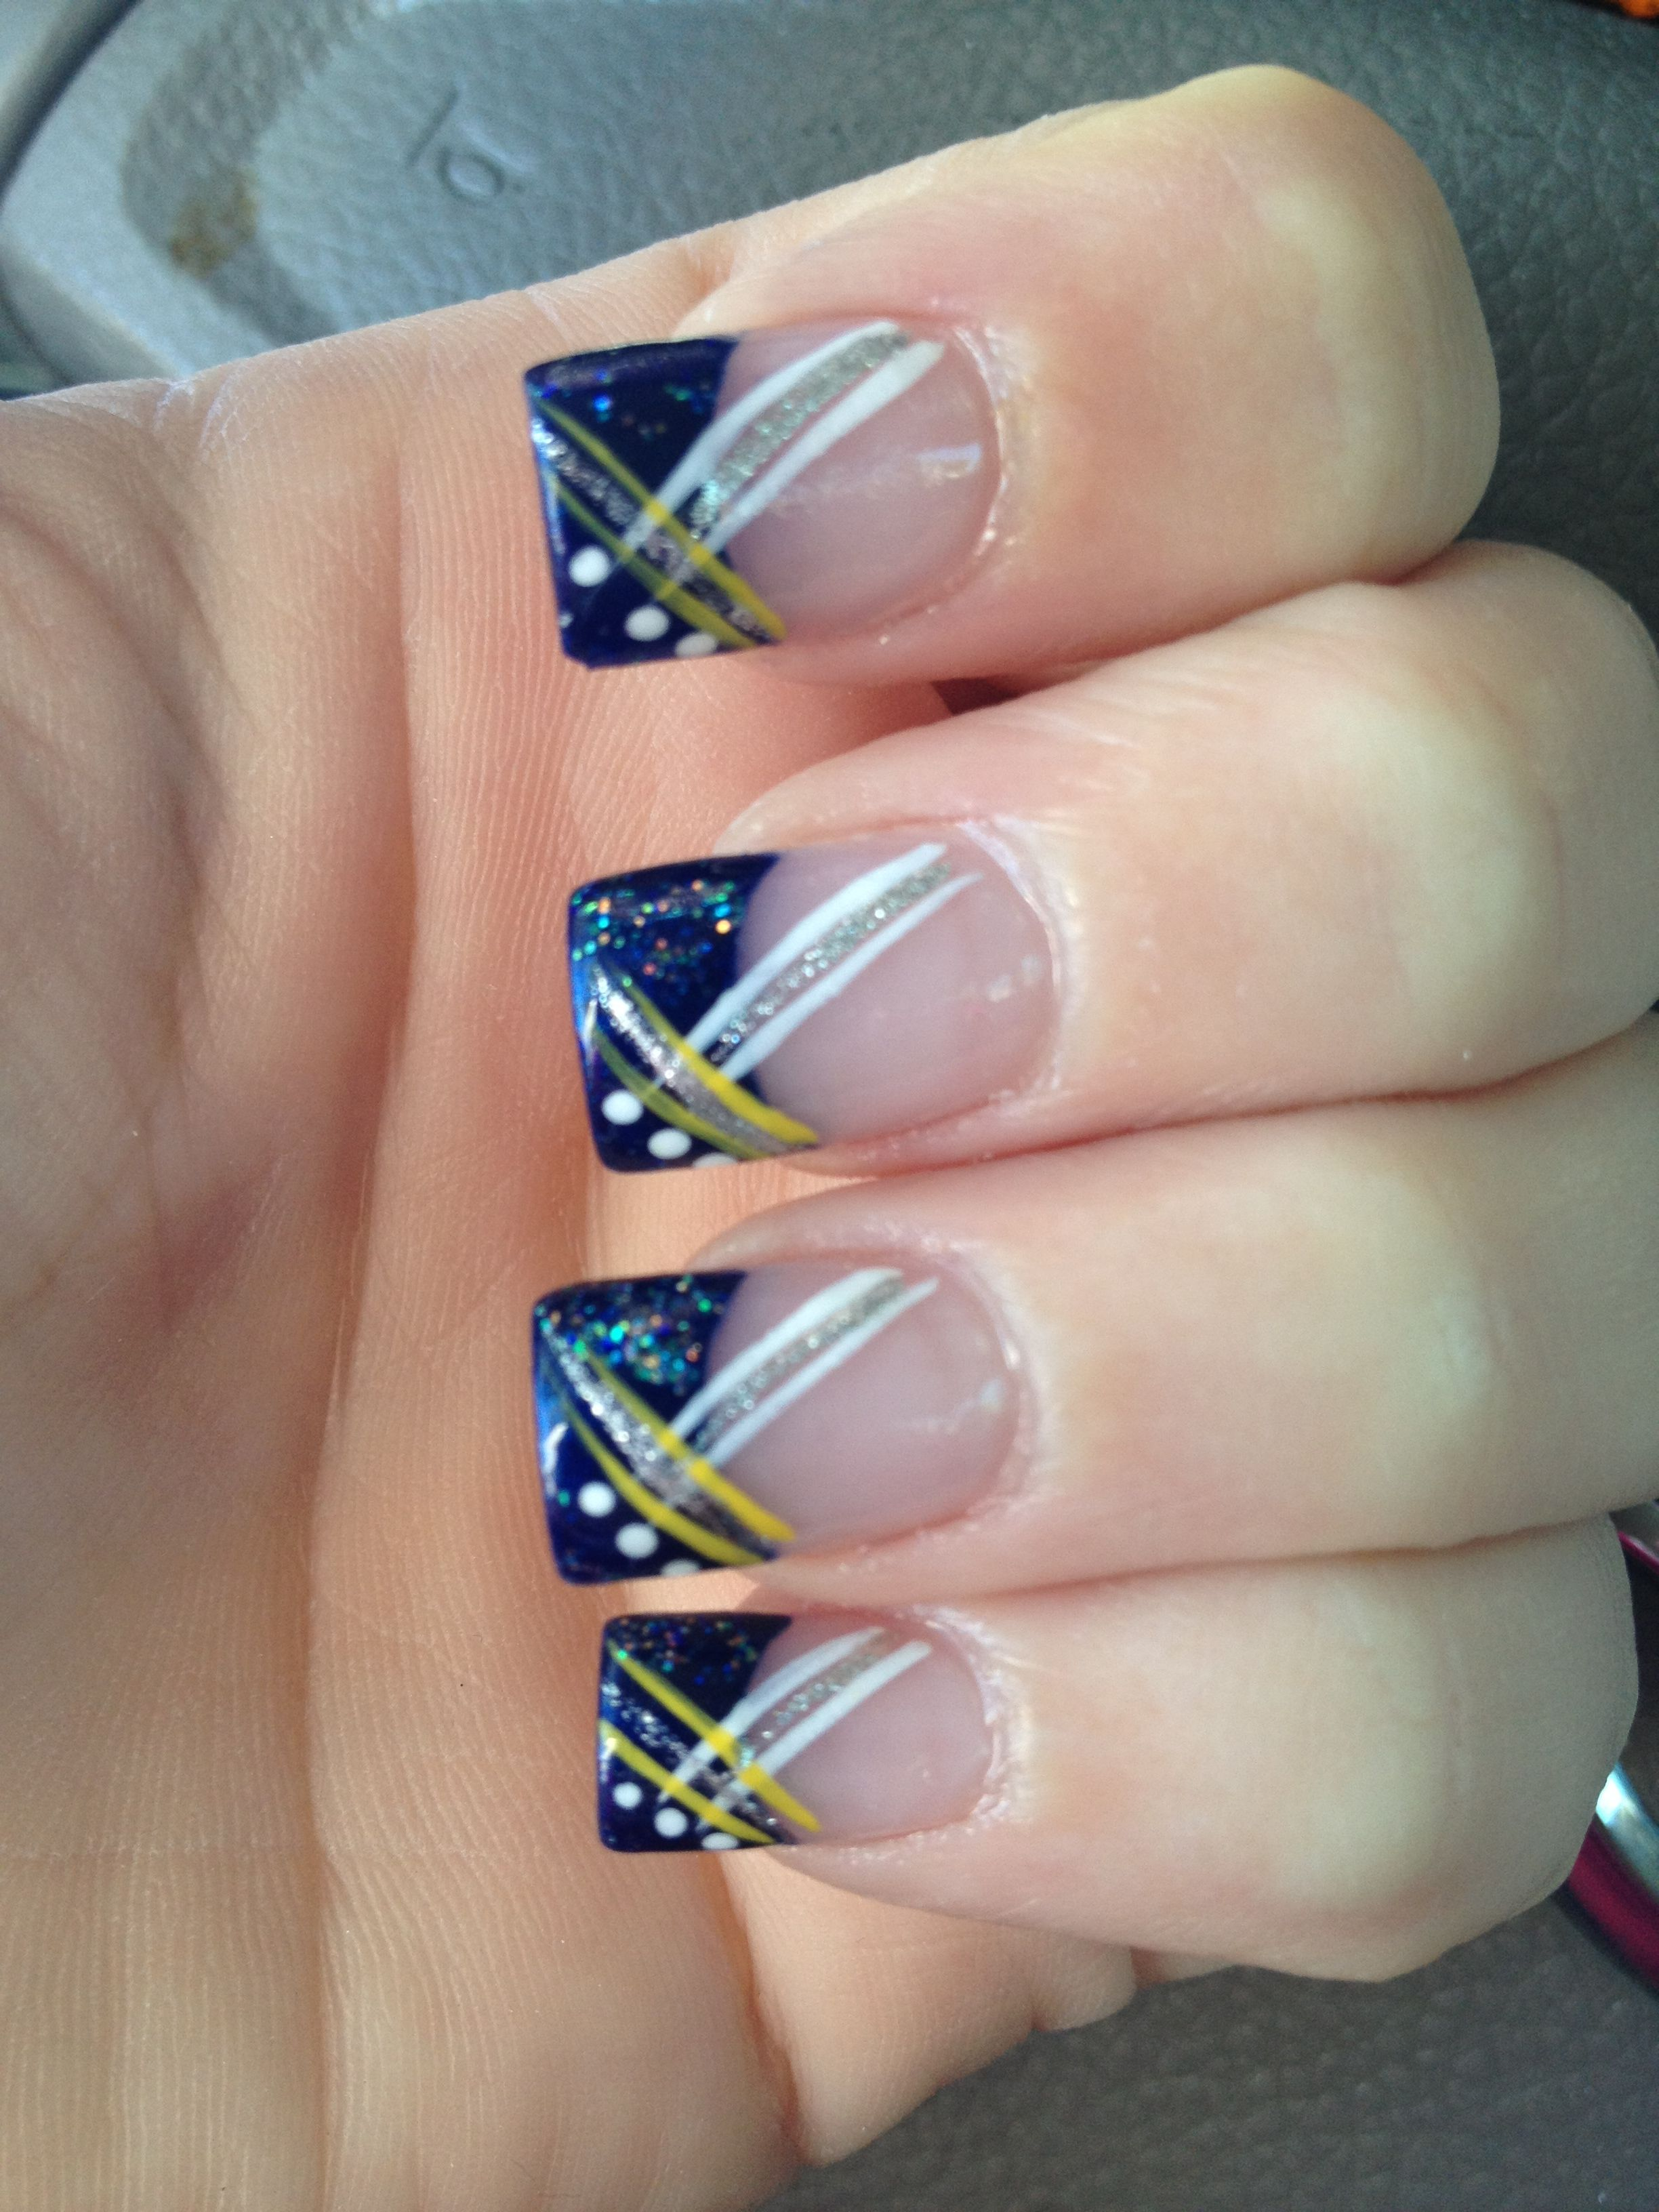 Another design by JT Nails in Las Vegas. | Nail art | Pinterest ...